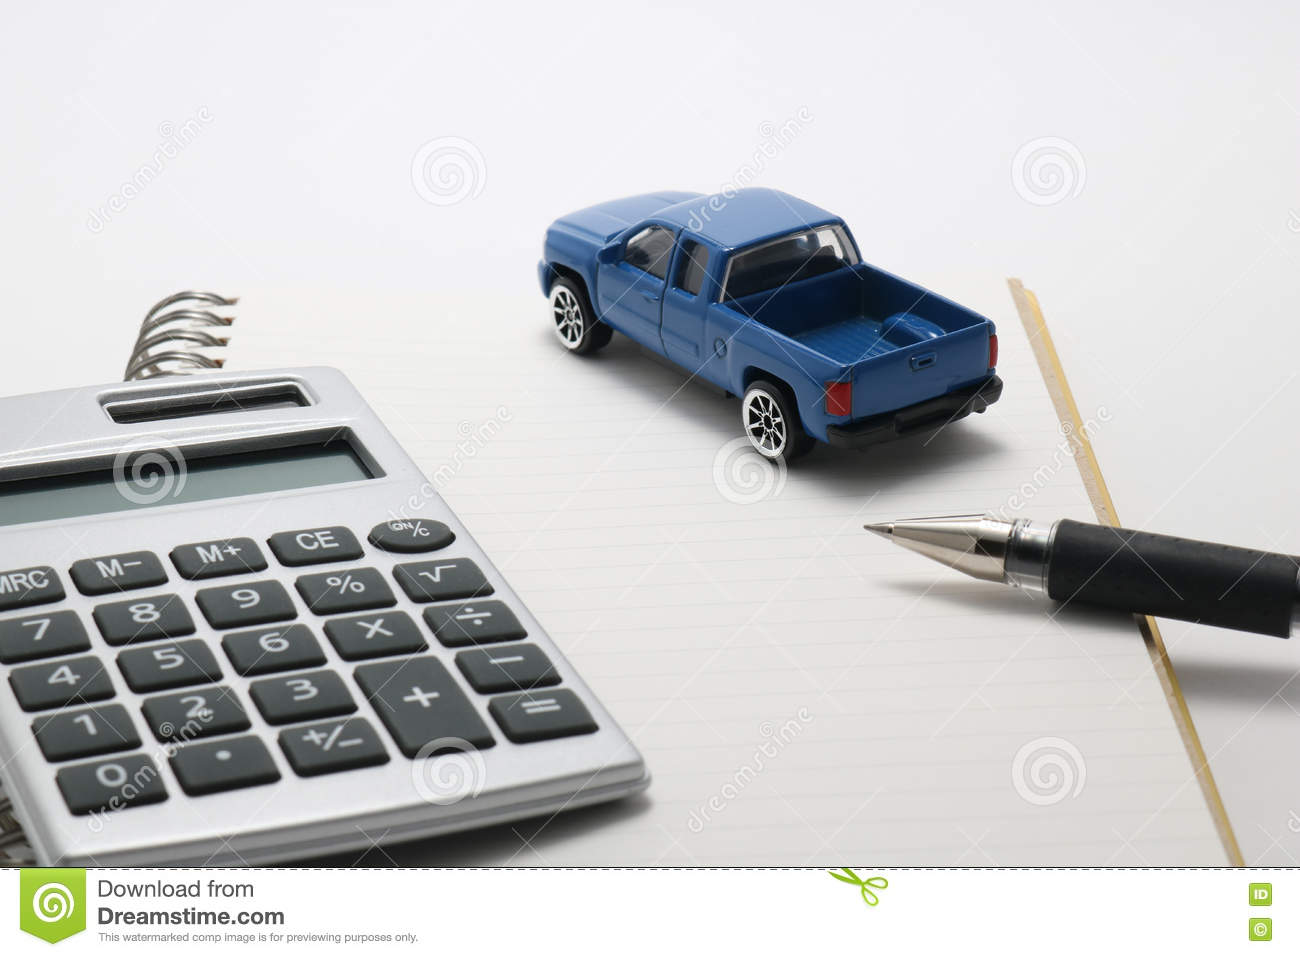 Royalty free stock photo download toy car truck calculator